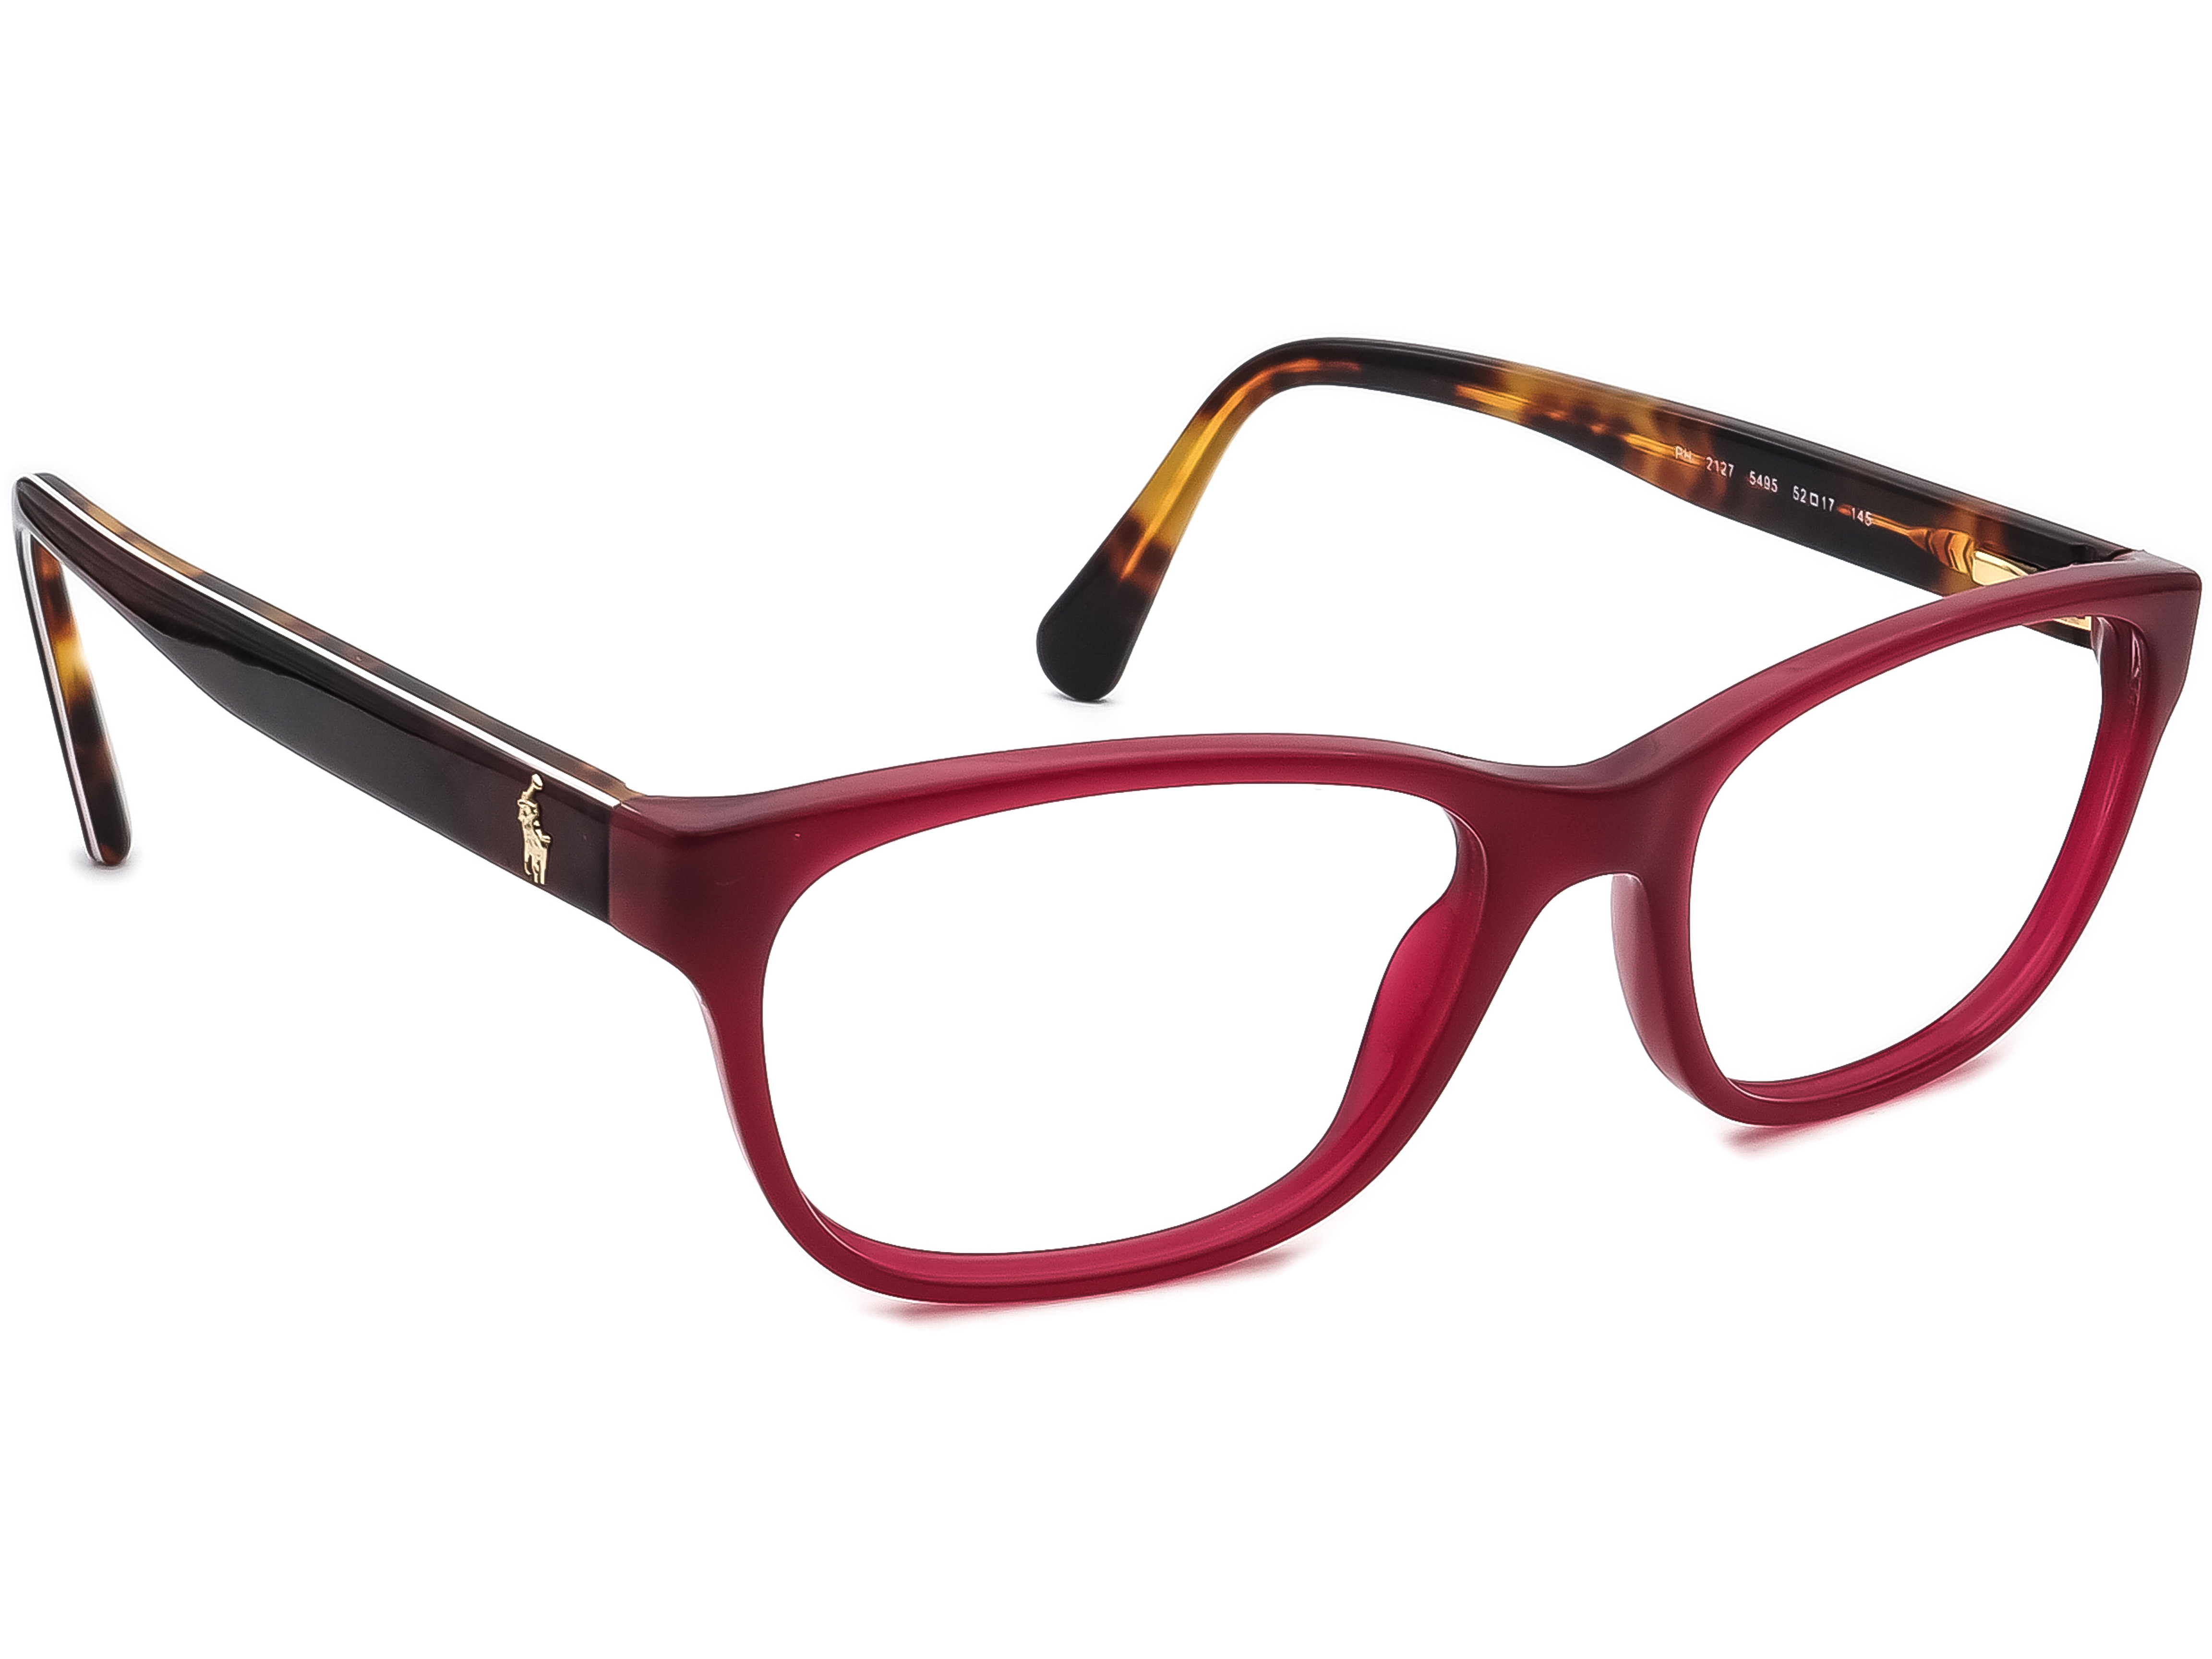 Ralph Lauren Polo PH 2127 5495 Eyeglasses